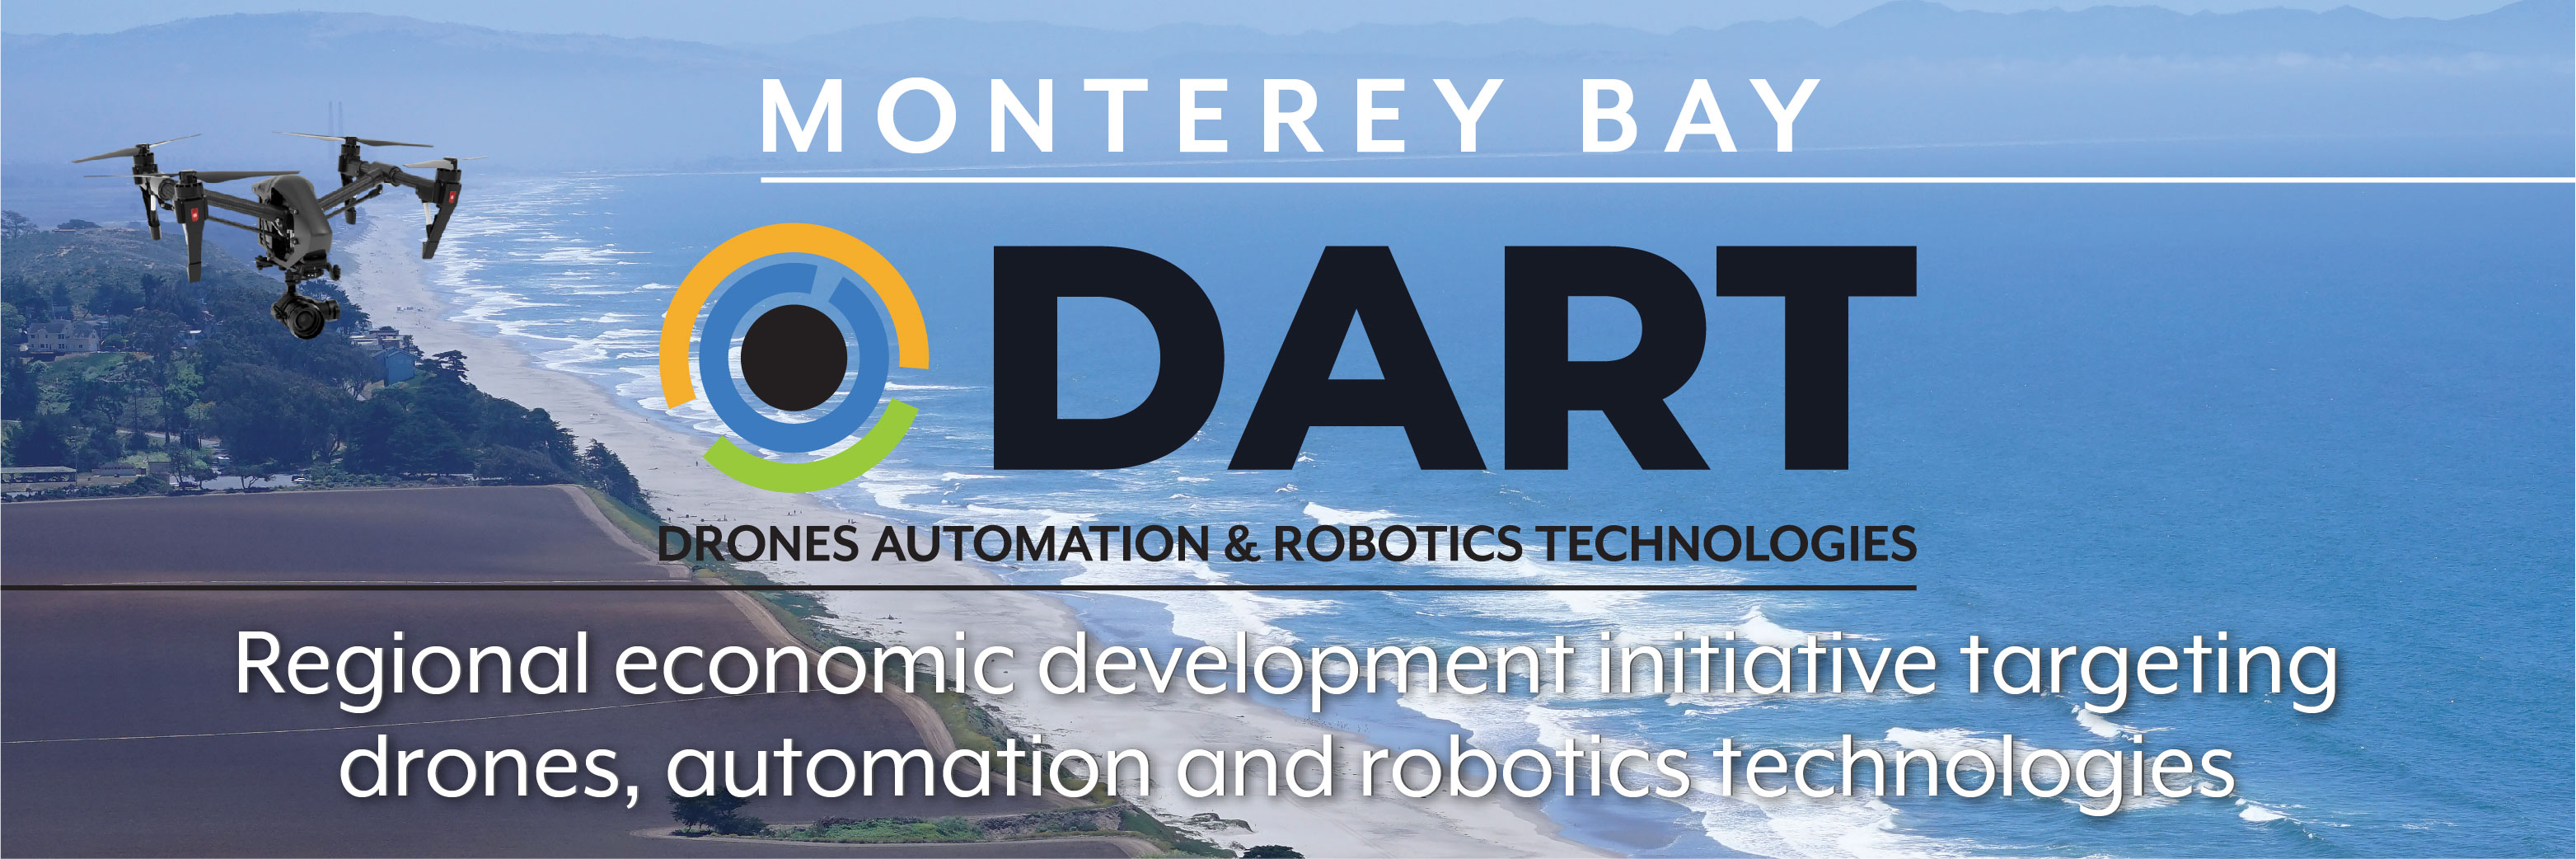 The Monterey Bay Drone, Automation & Robotics Technology (DART) initiative is a regional economic development strategy to focus on these current and future growth sectors for new venture formation, jobs growth and regional vitality.